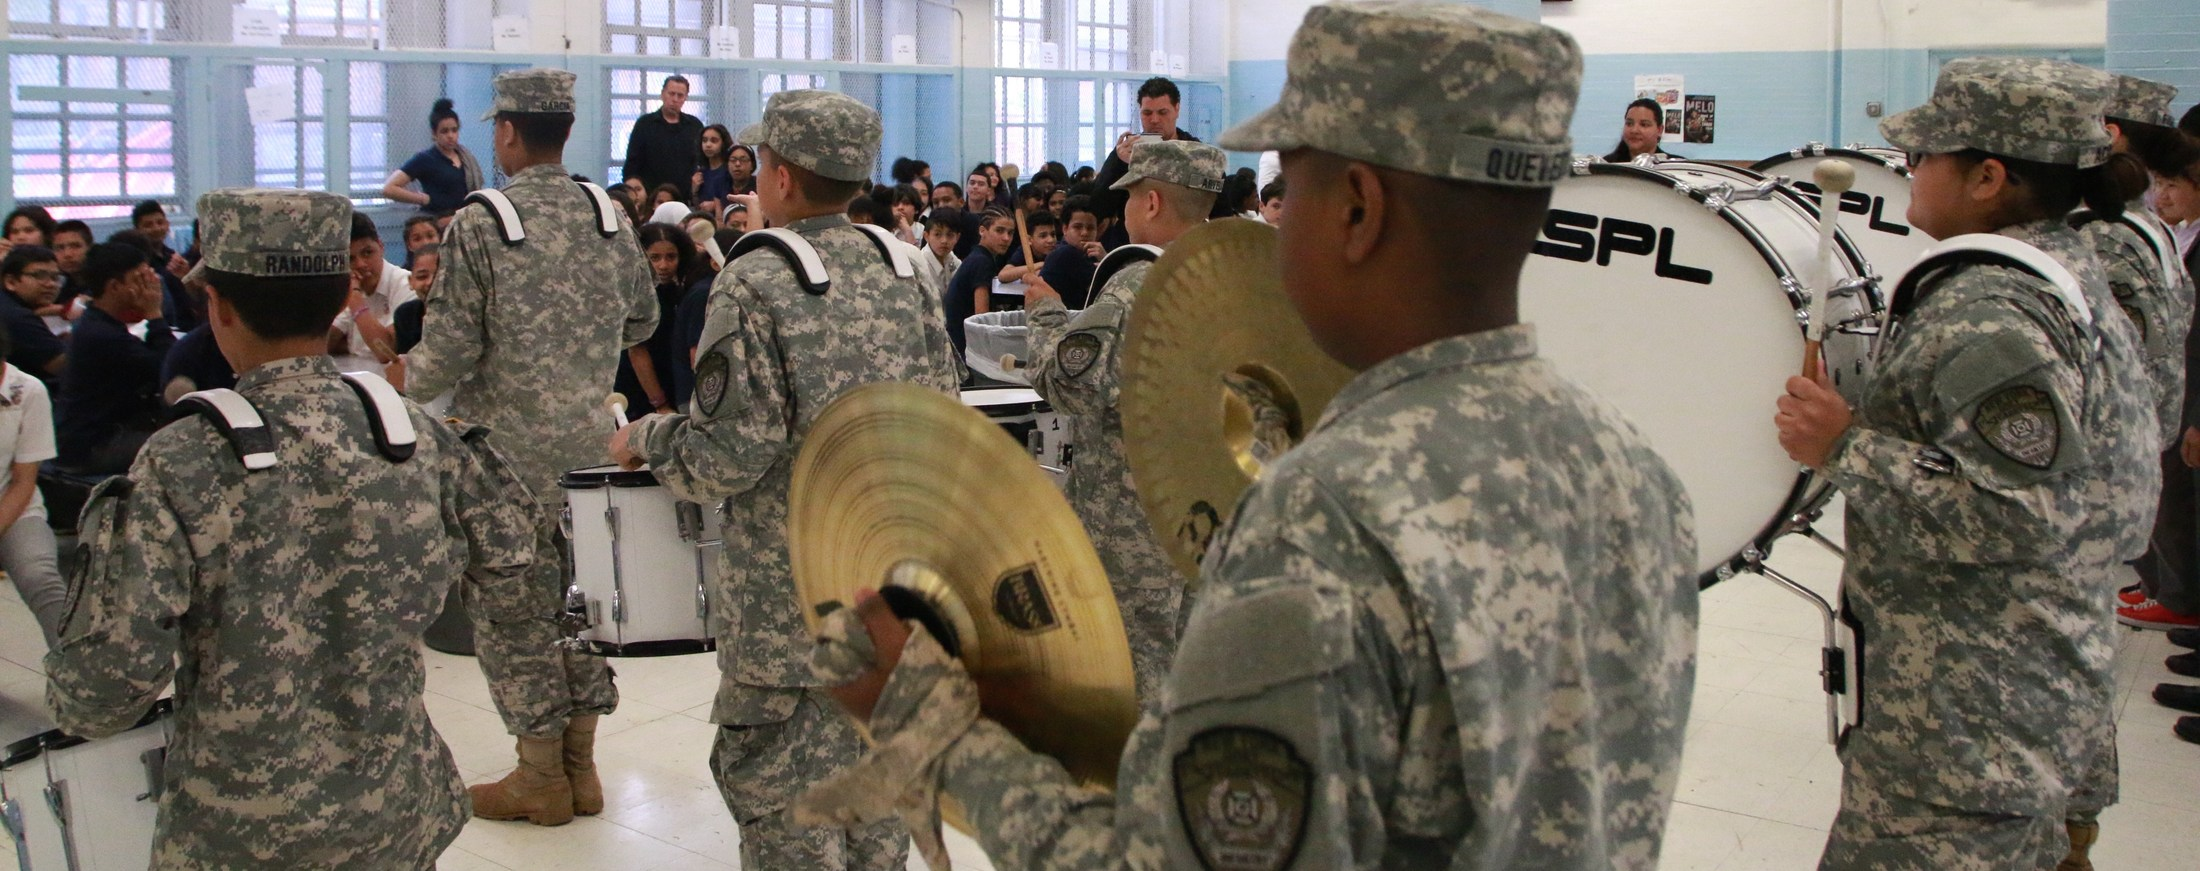 NY Grey Cadets playing instruments in the cafeteria